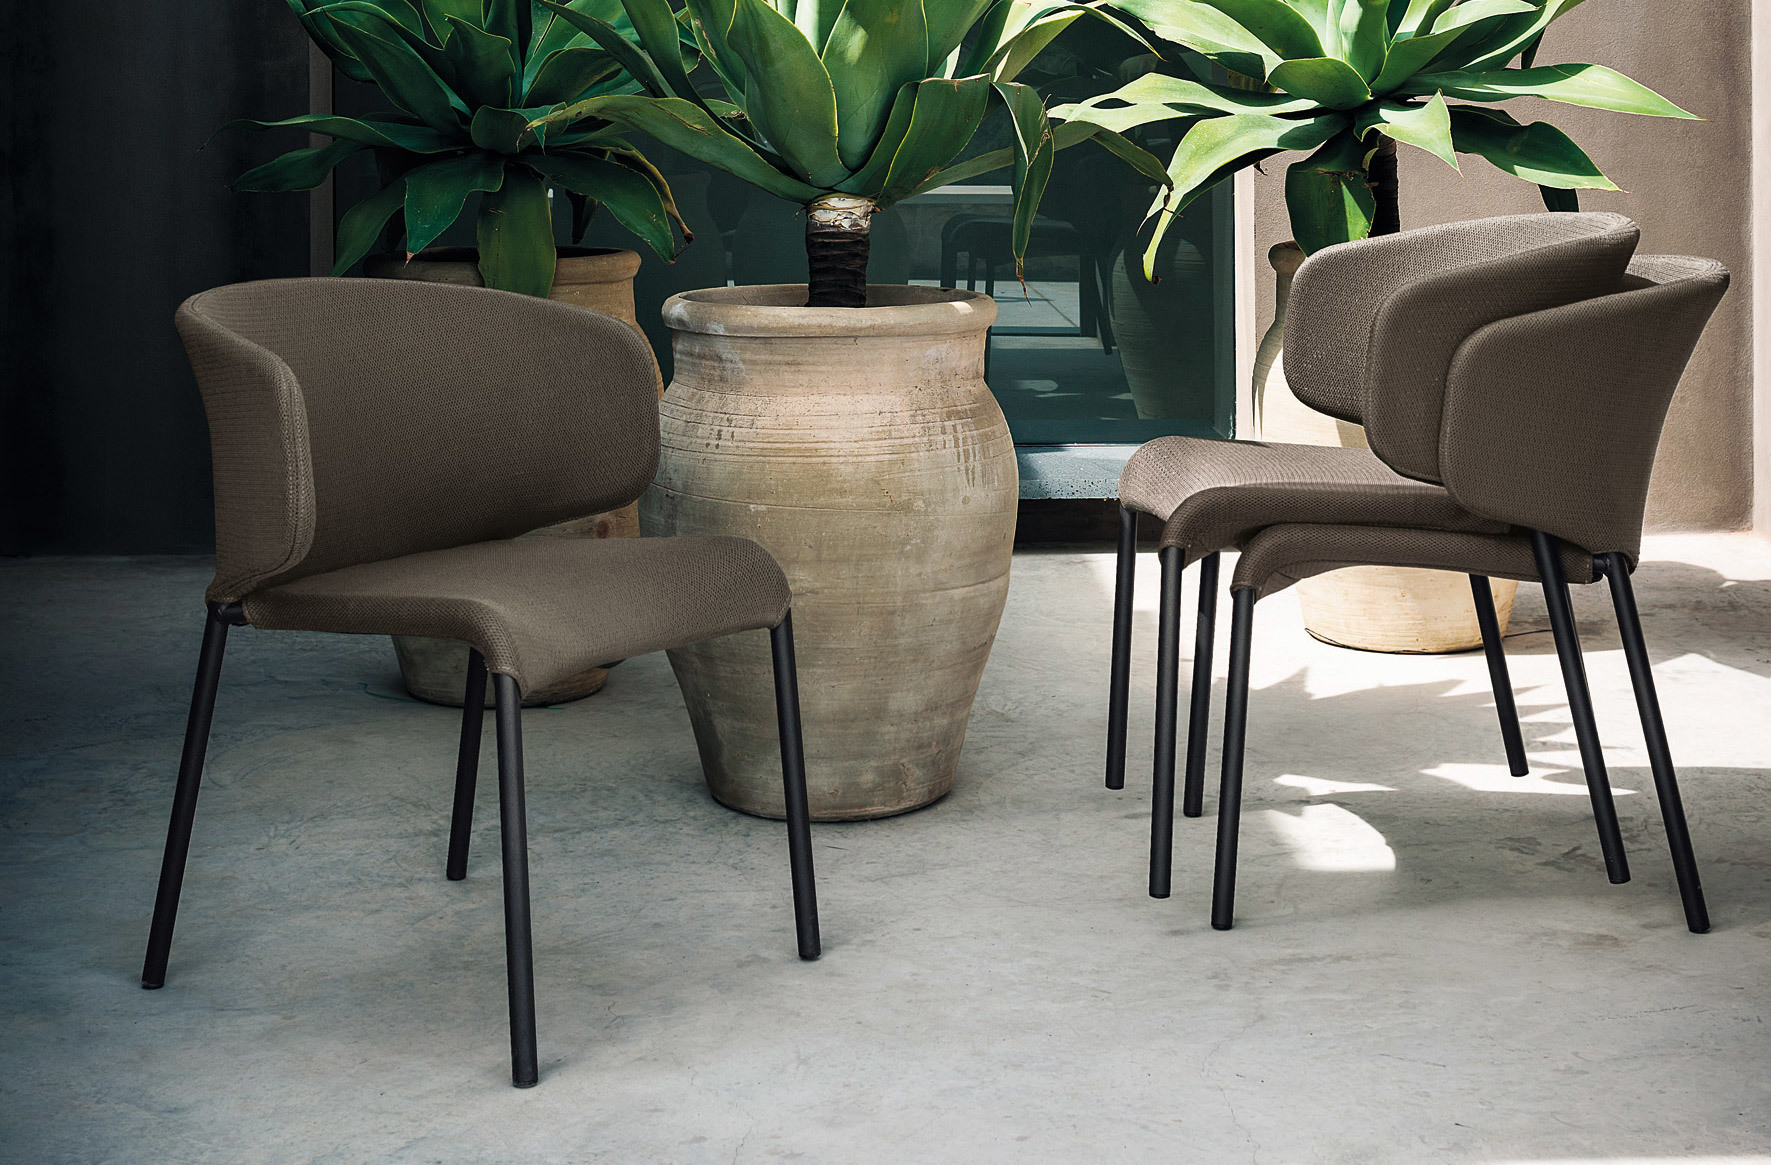 DOUBLE chair by Roda